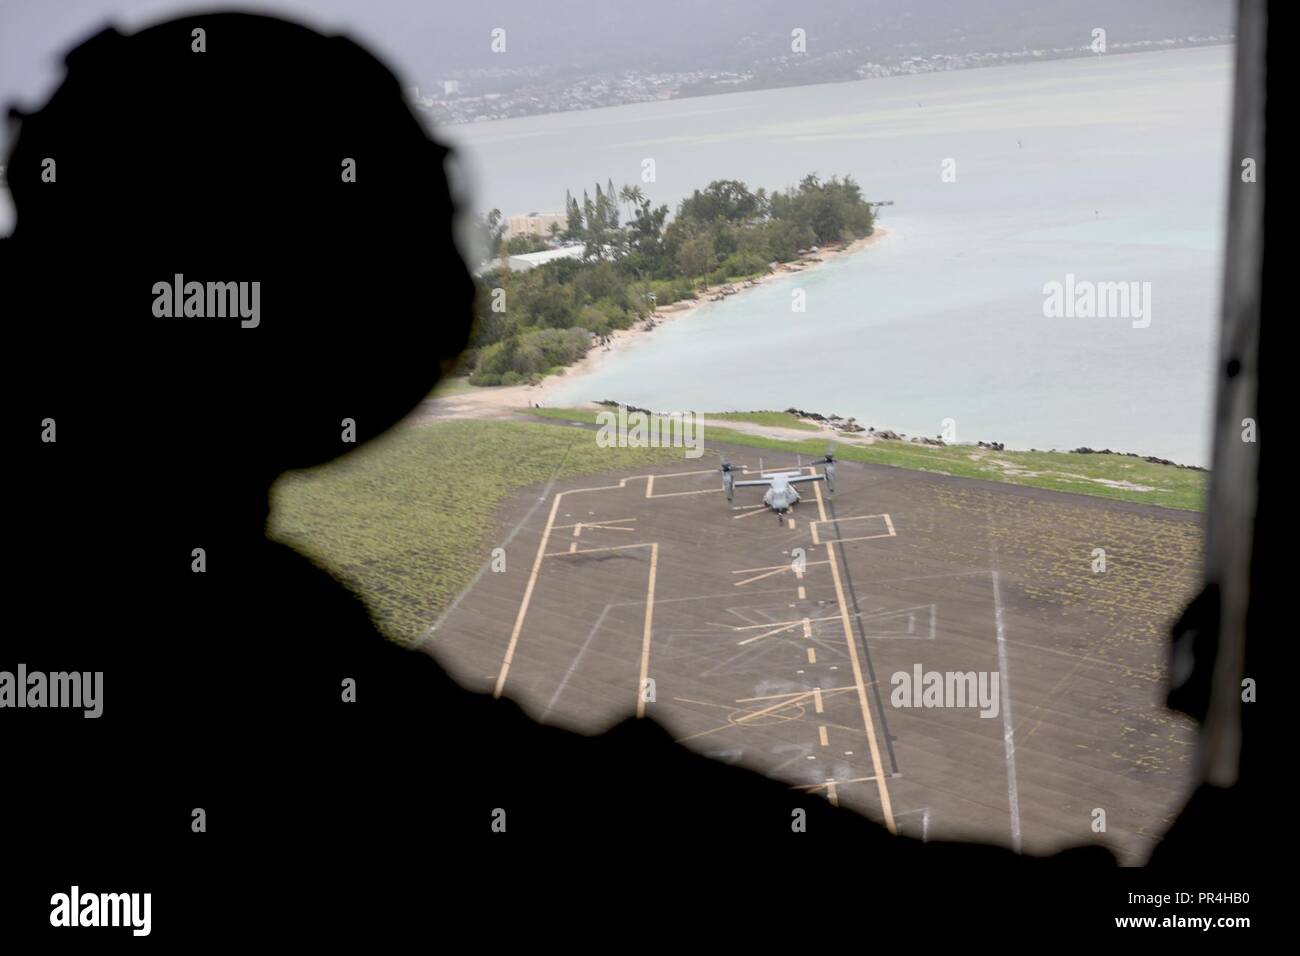 A U.S. Marine Corps MV-22 Osprey crewchief, observes a second Osprey aircraft touch down at Landing Zone Westfield, both assigned to Marine Medium Tiltrotor Squadron 363 (VMM-363), during confined area landing exercises on Marine Corps Base Hawaii, Sept. 13, 2018. The training provided an opportunity for pilots and crew chiefs to improve their proficiency and experience in flying around a tropical environment. Stock Photo